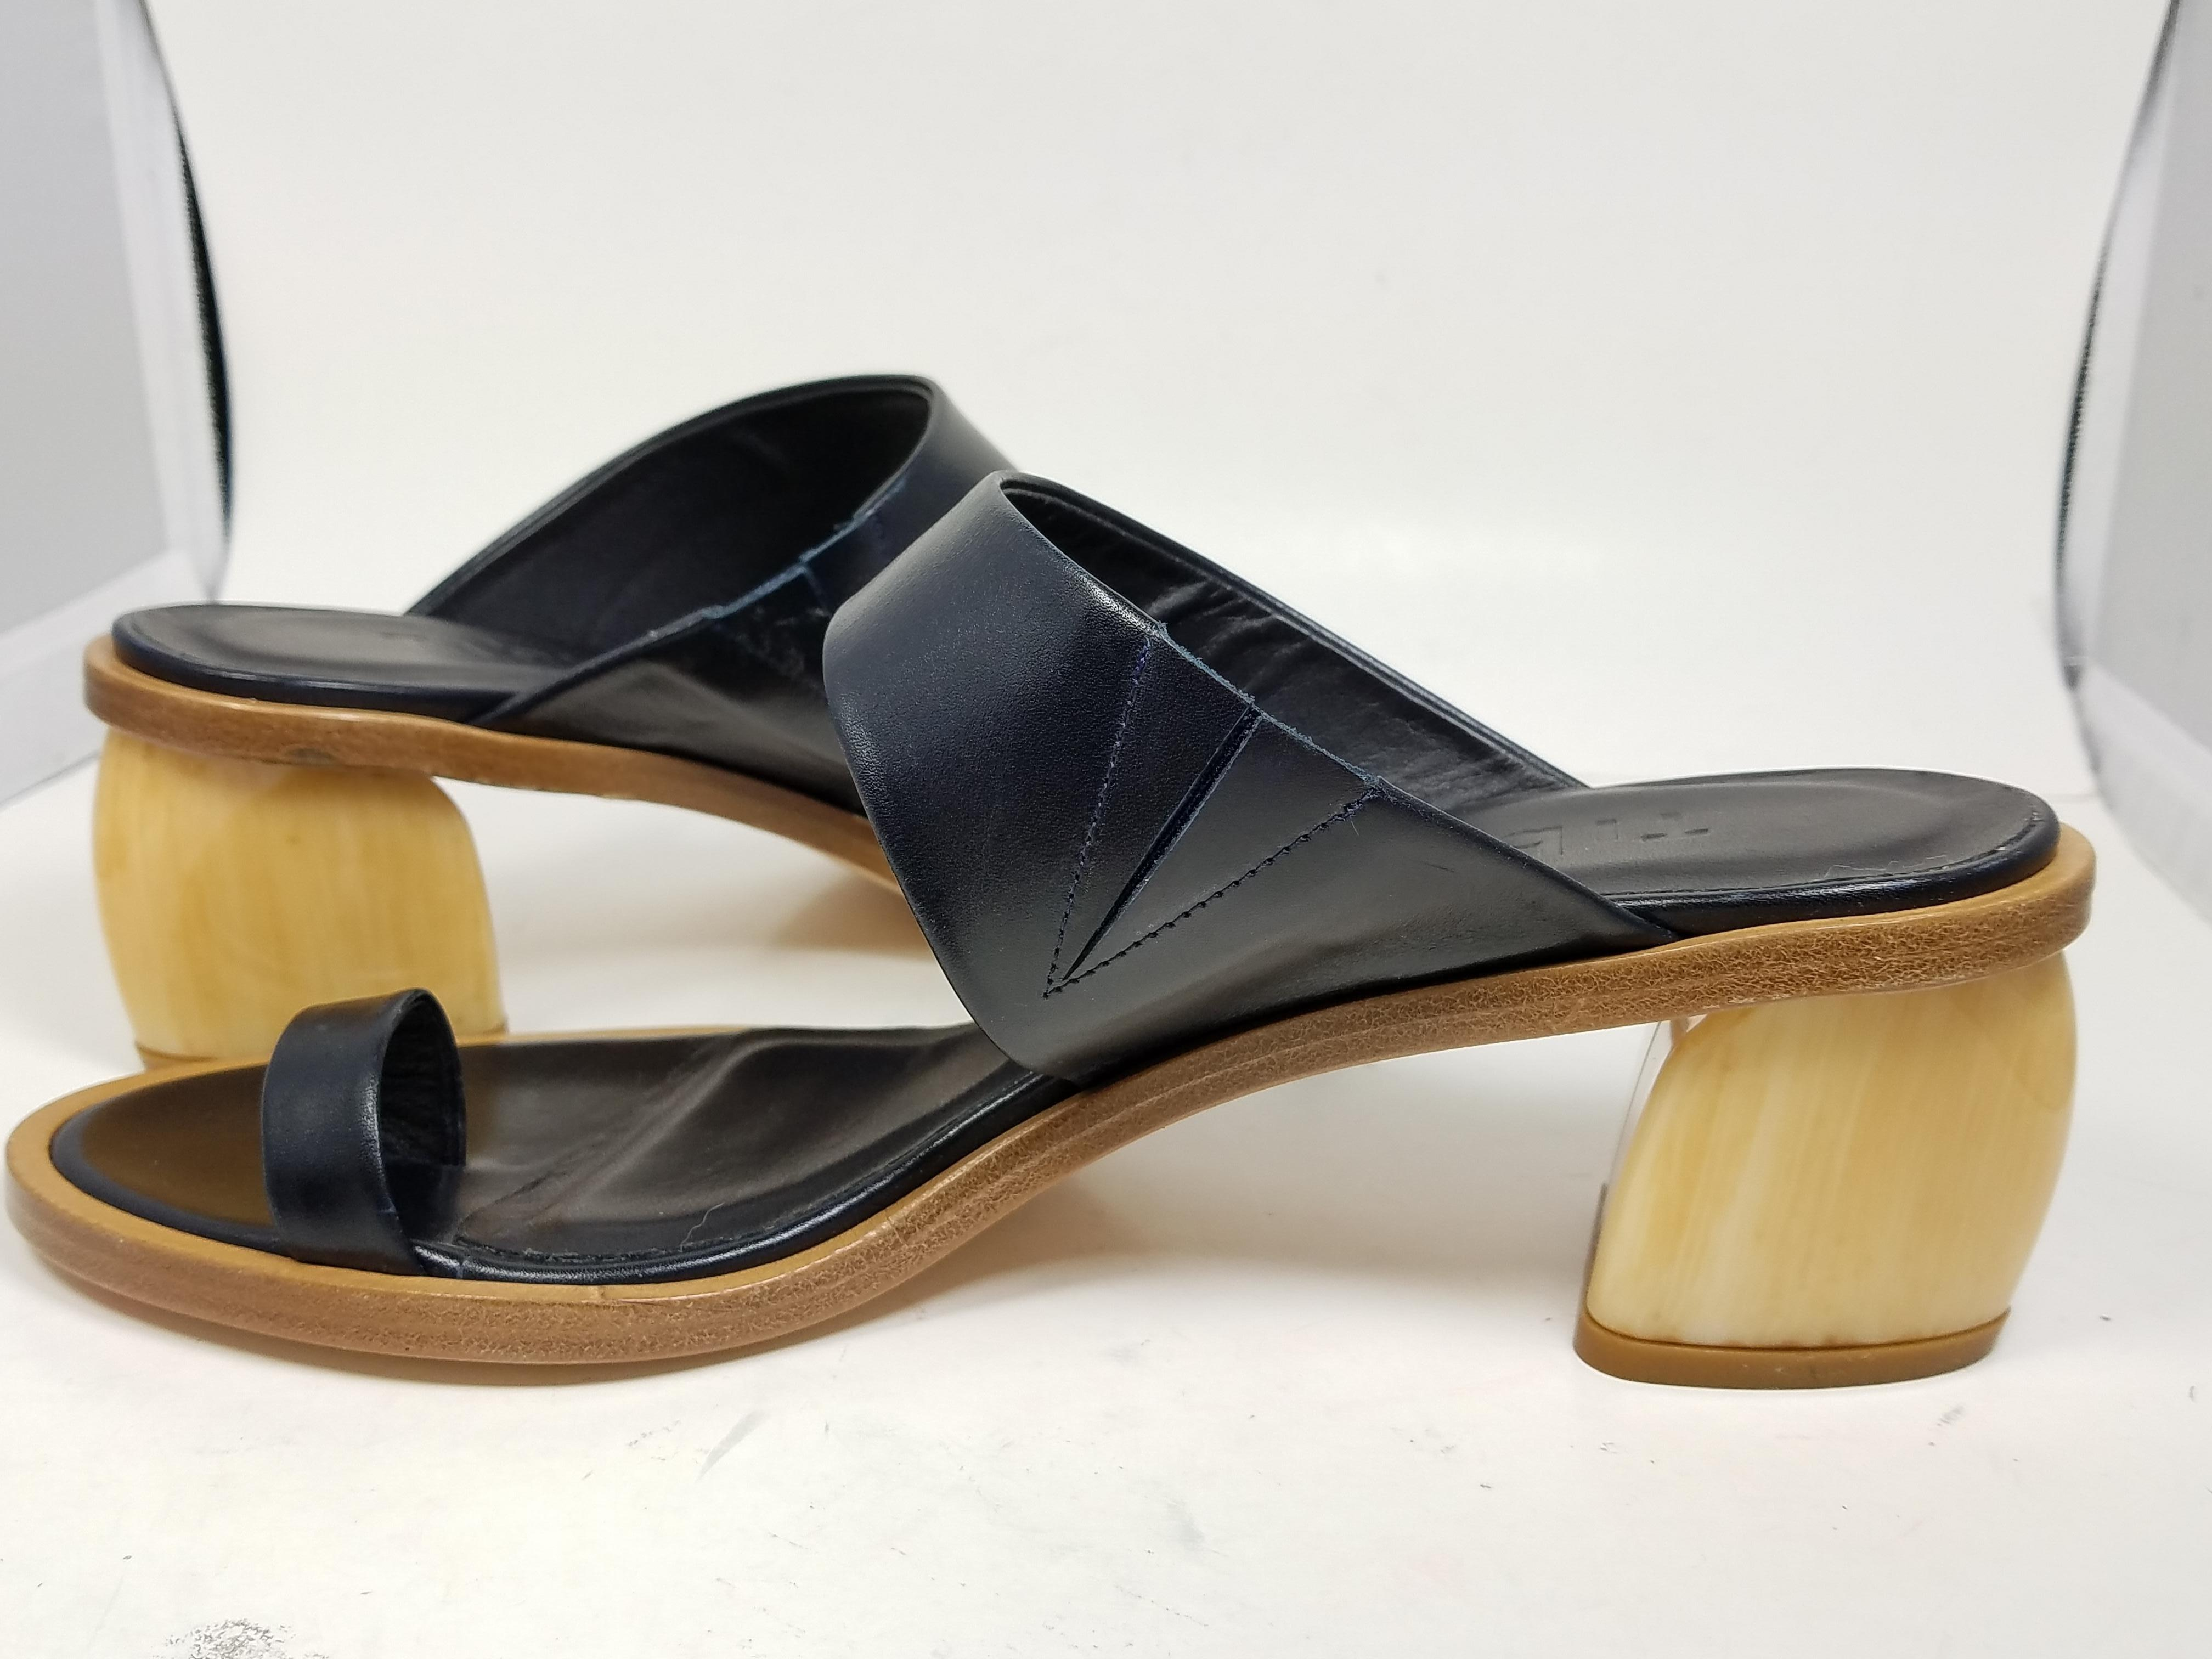 cheap perfect from china sale online Tibi Leather Slide Sandals iqgG1uxwAX